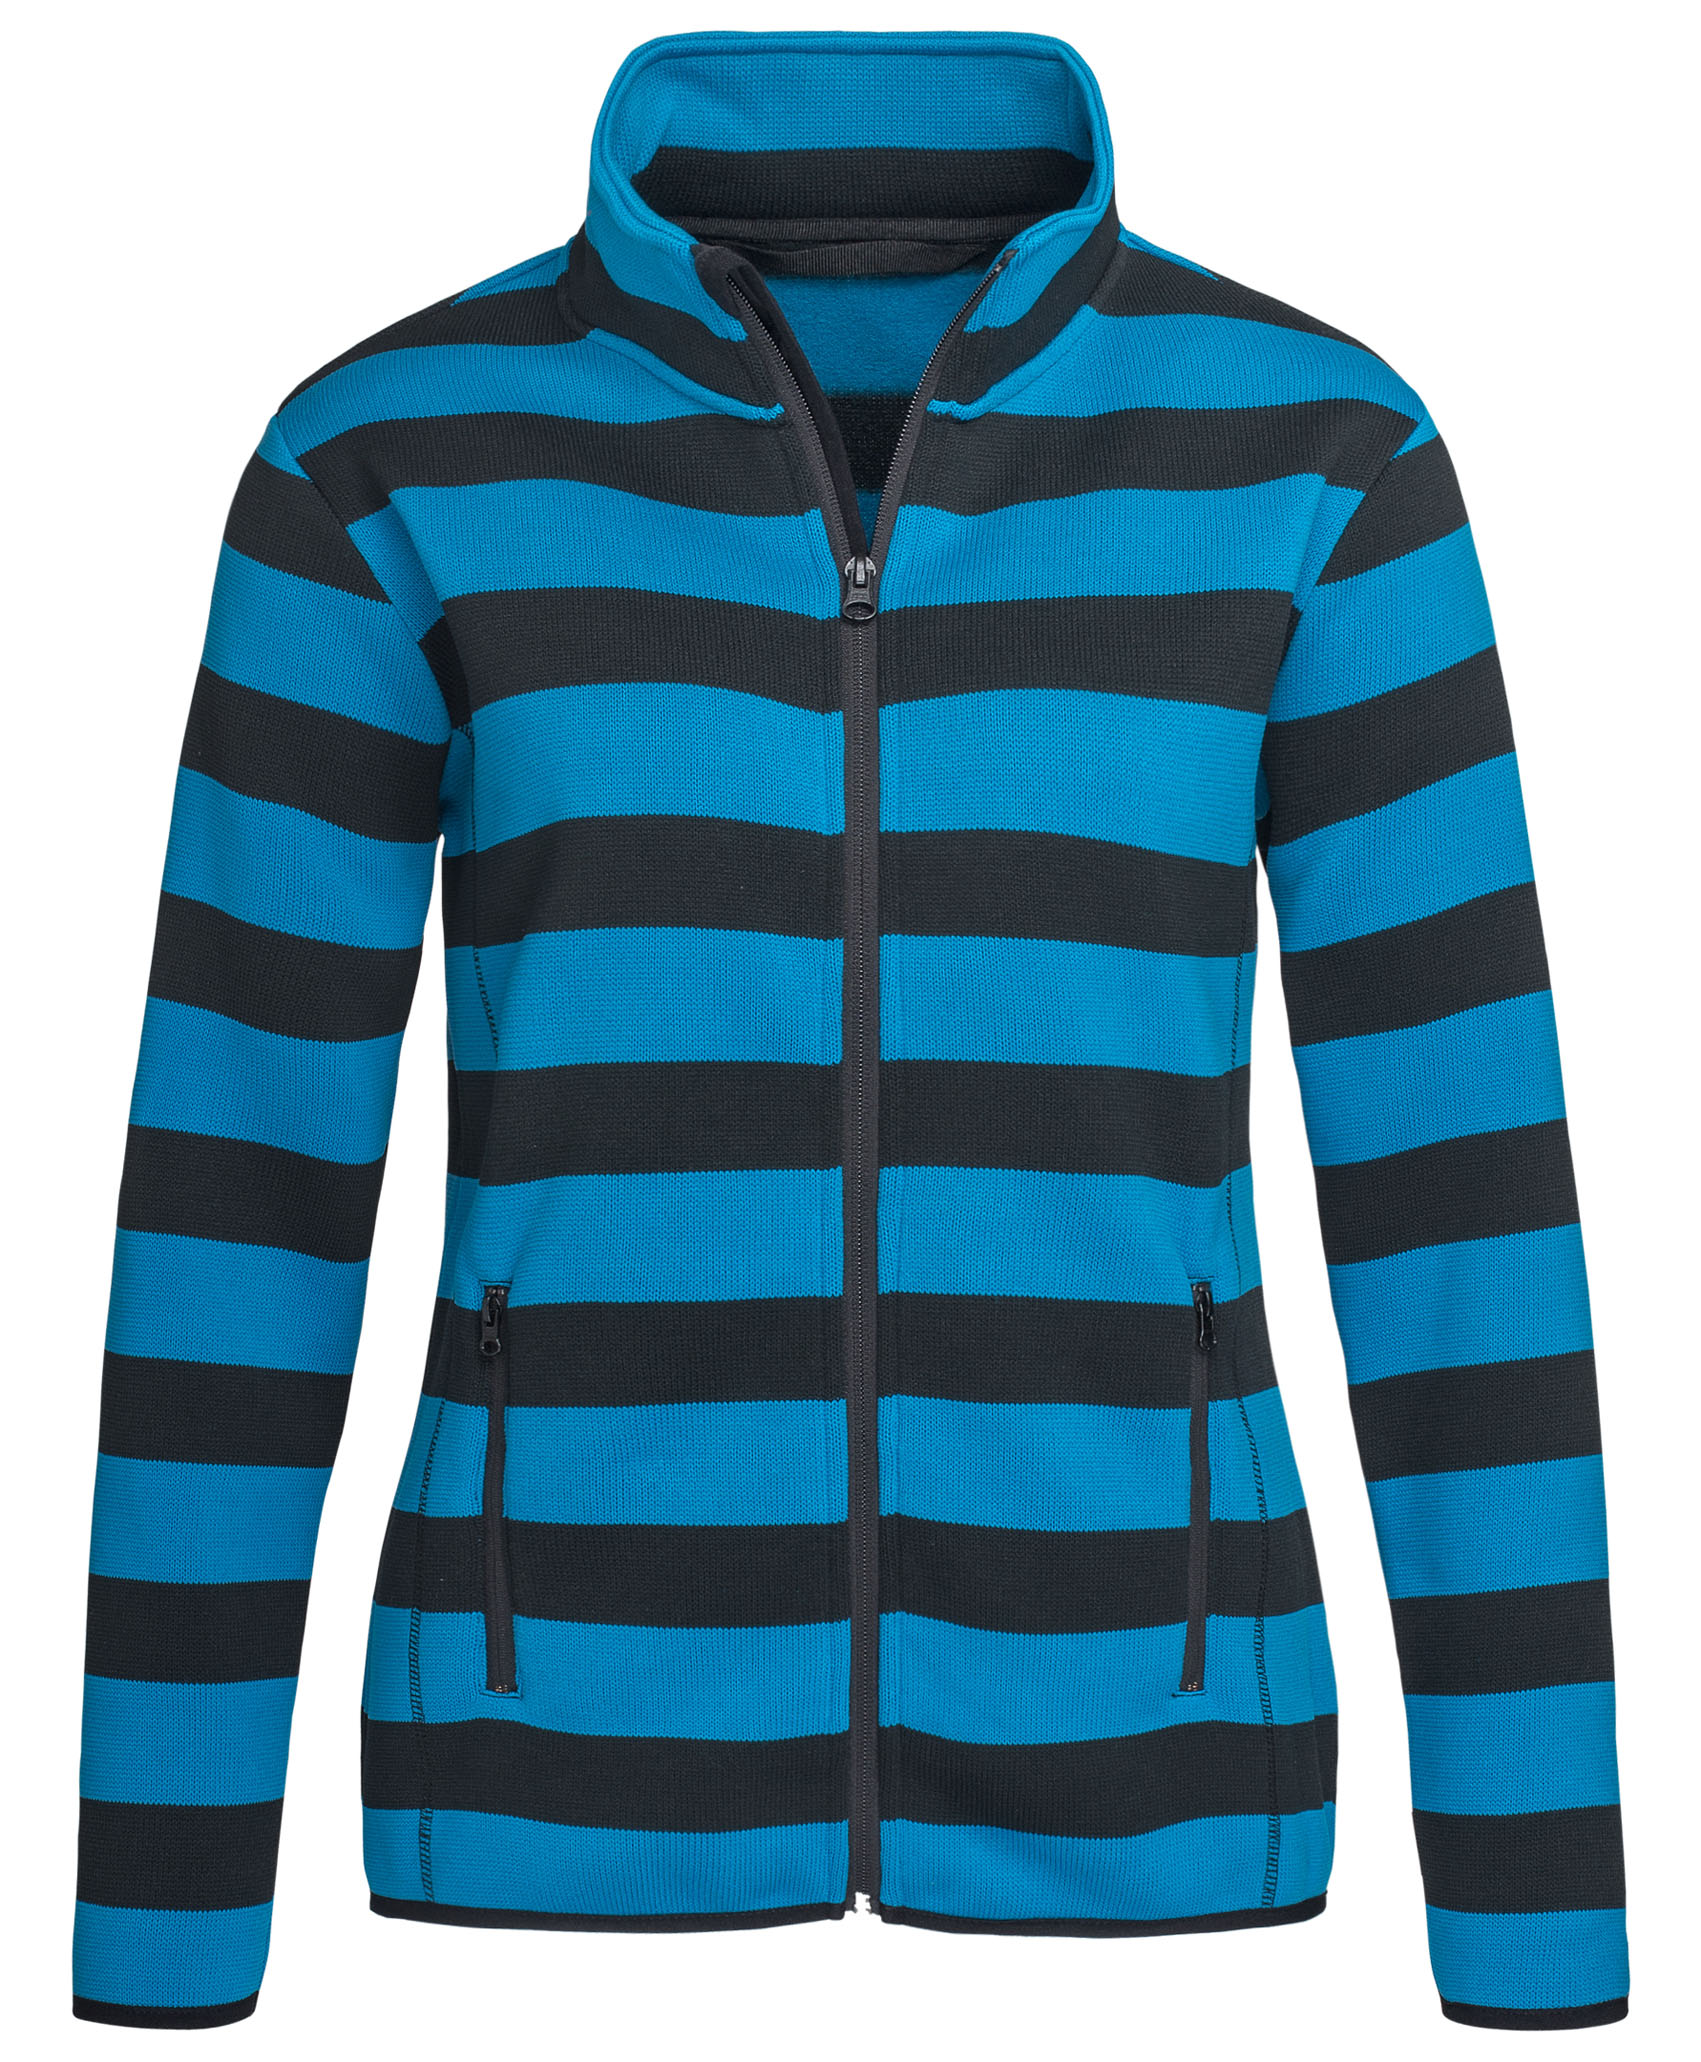 Stedman Polar Fleece Cardigan Striped for her